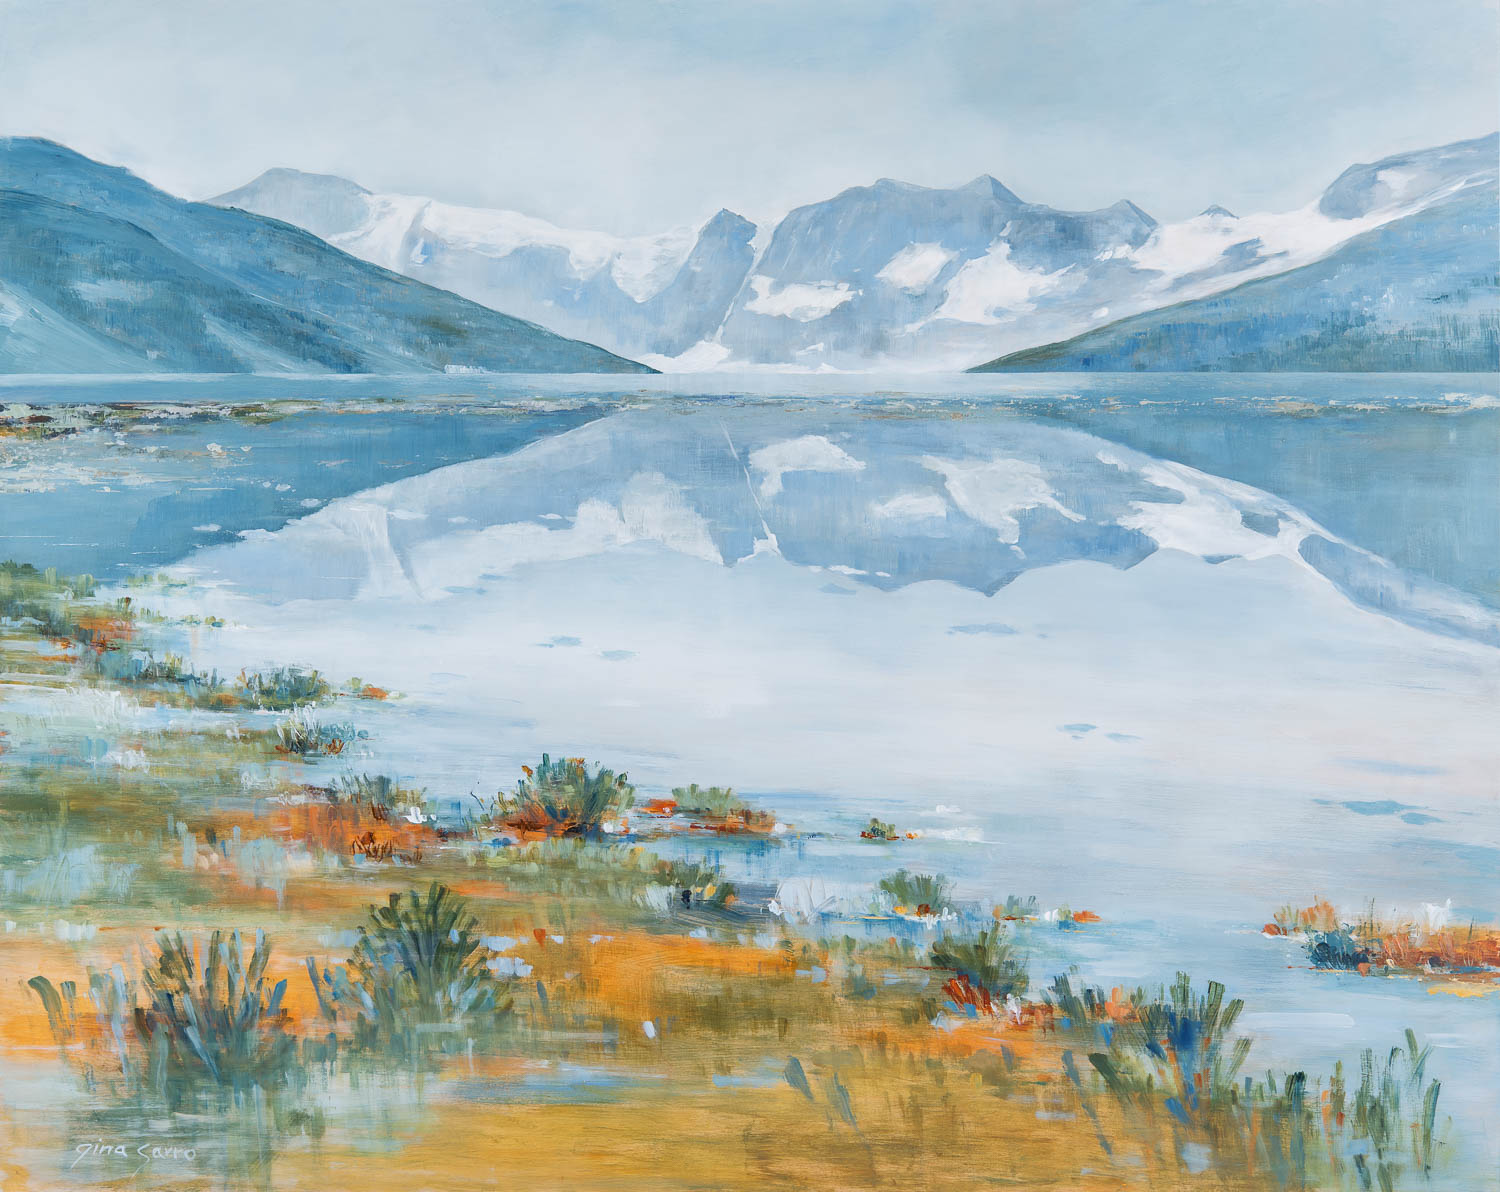 Silent Reflection, acrylic landscape by Gina Sarro | Effusion Art Gallery + Cast Glass Studio, Invermere BC